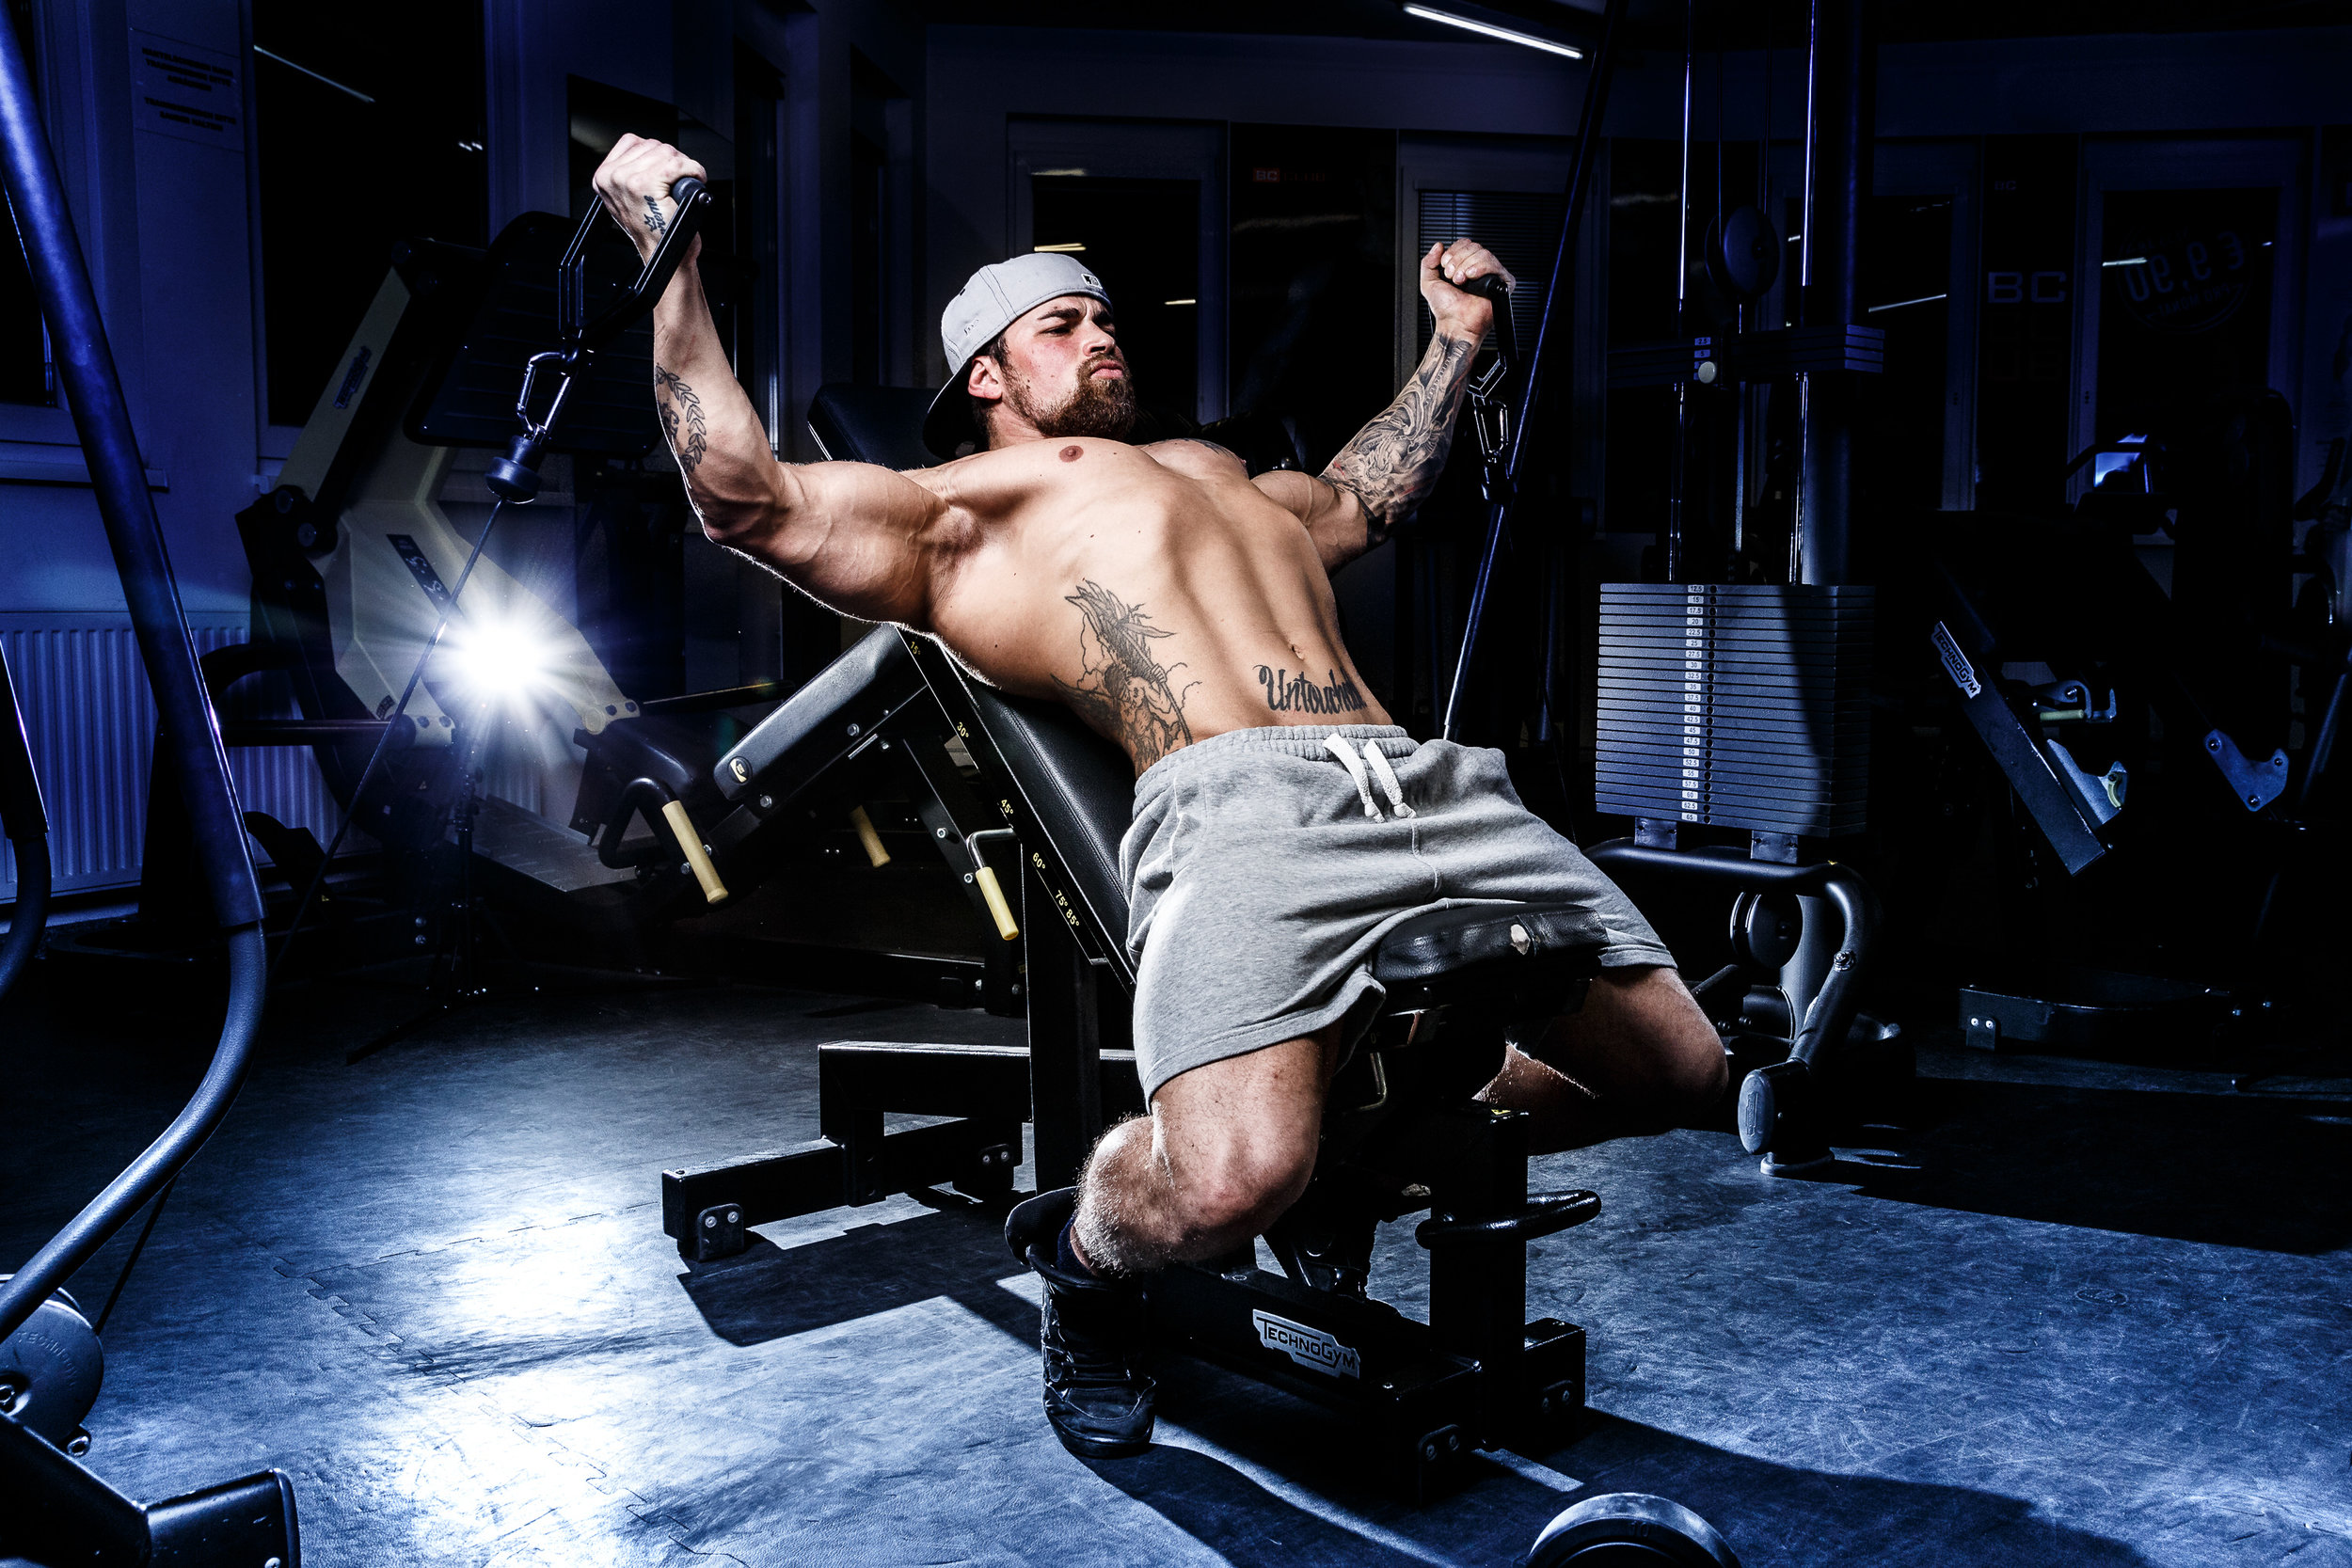 Bodybuilder-photoshoot-rawpix.at-4060.jpg